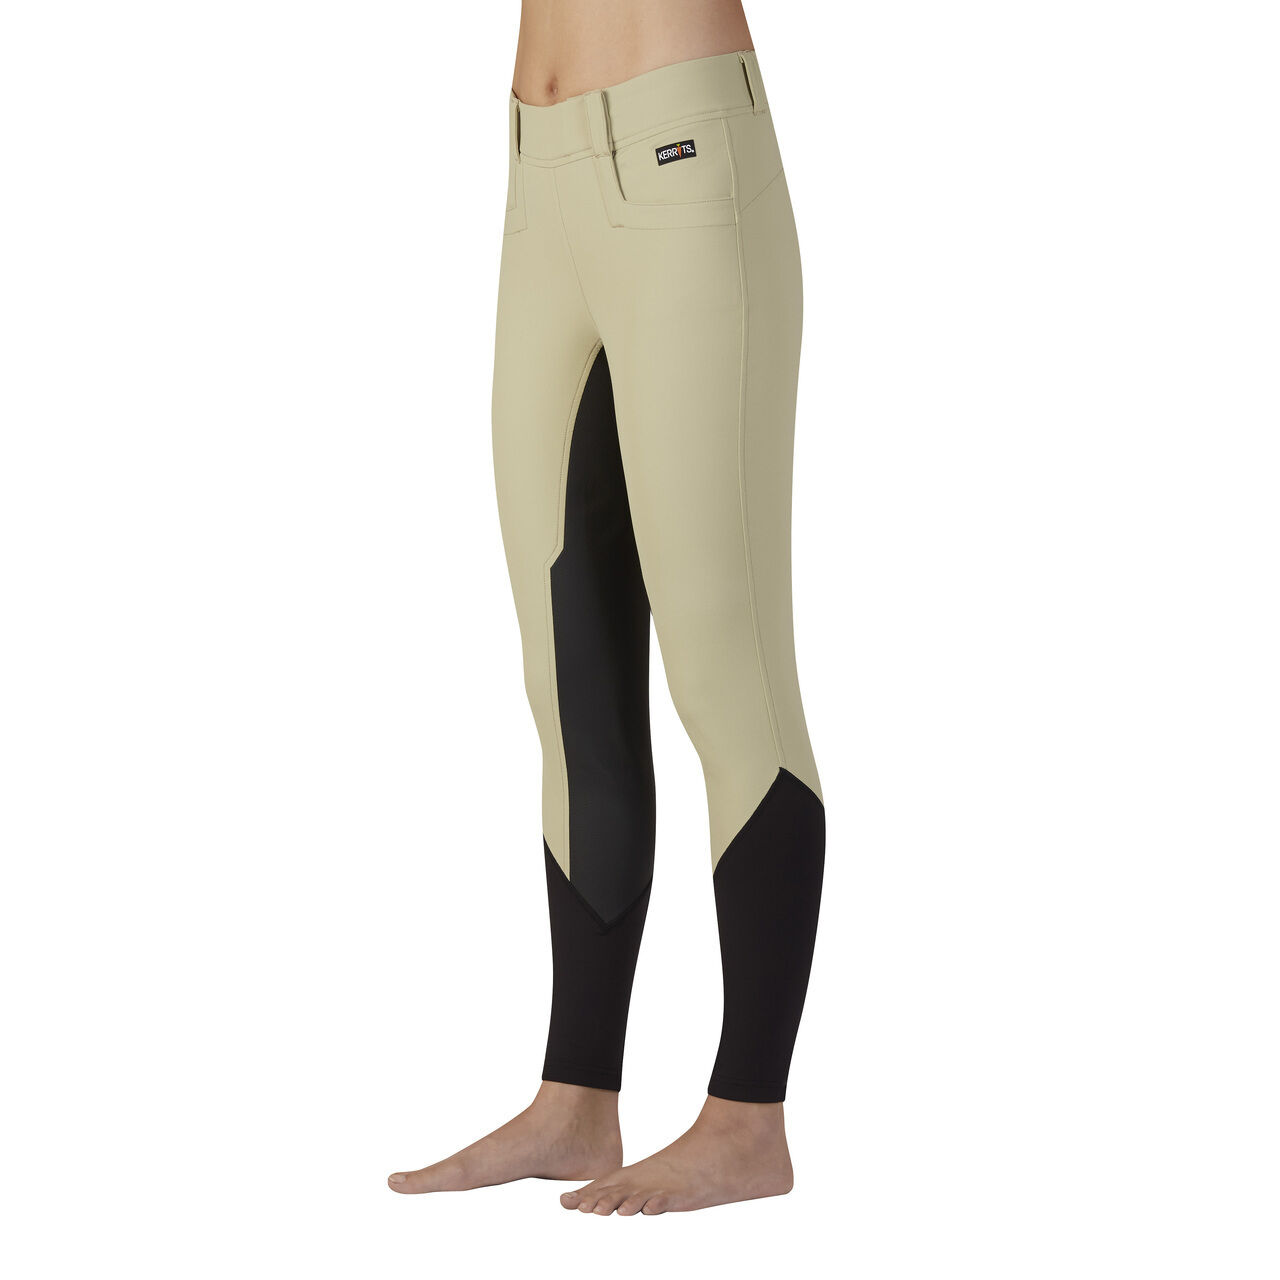 Kerrits Griptek II Fullseat Riding Breeches  - Ladies - Tan - All Sizes  online shopping sports